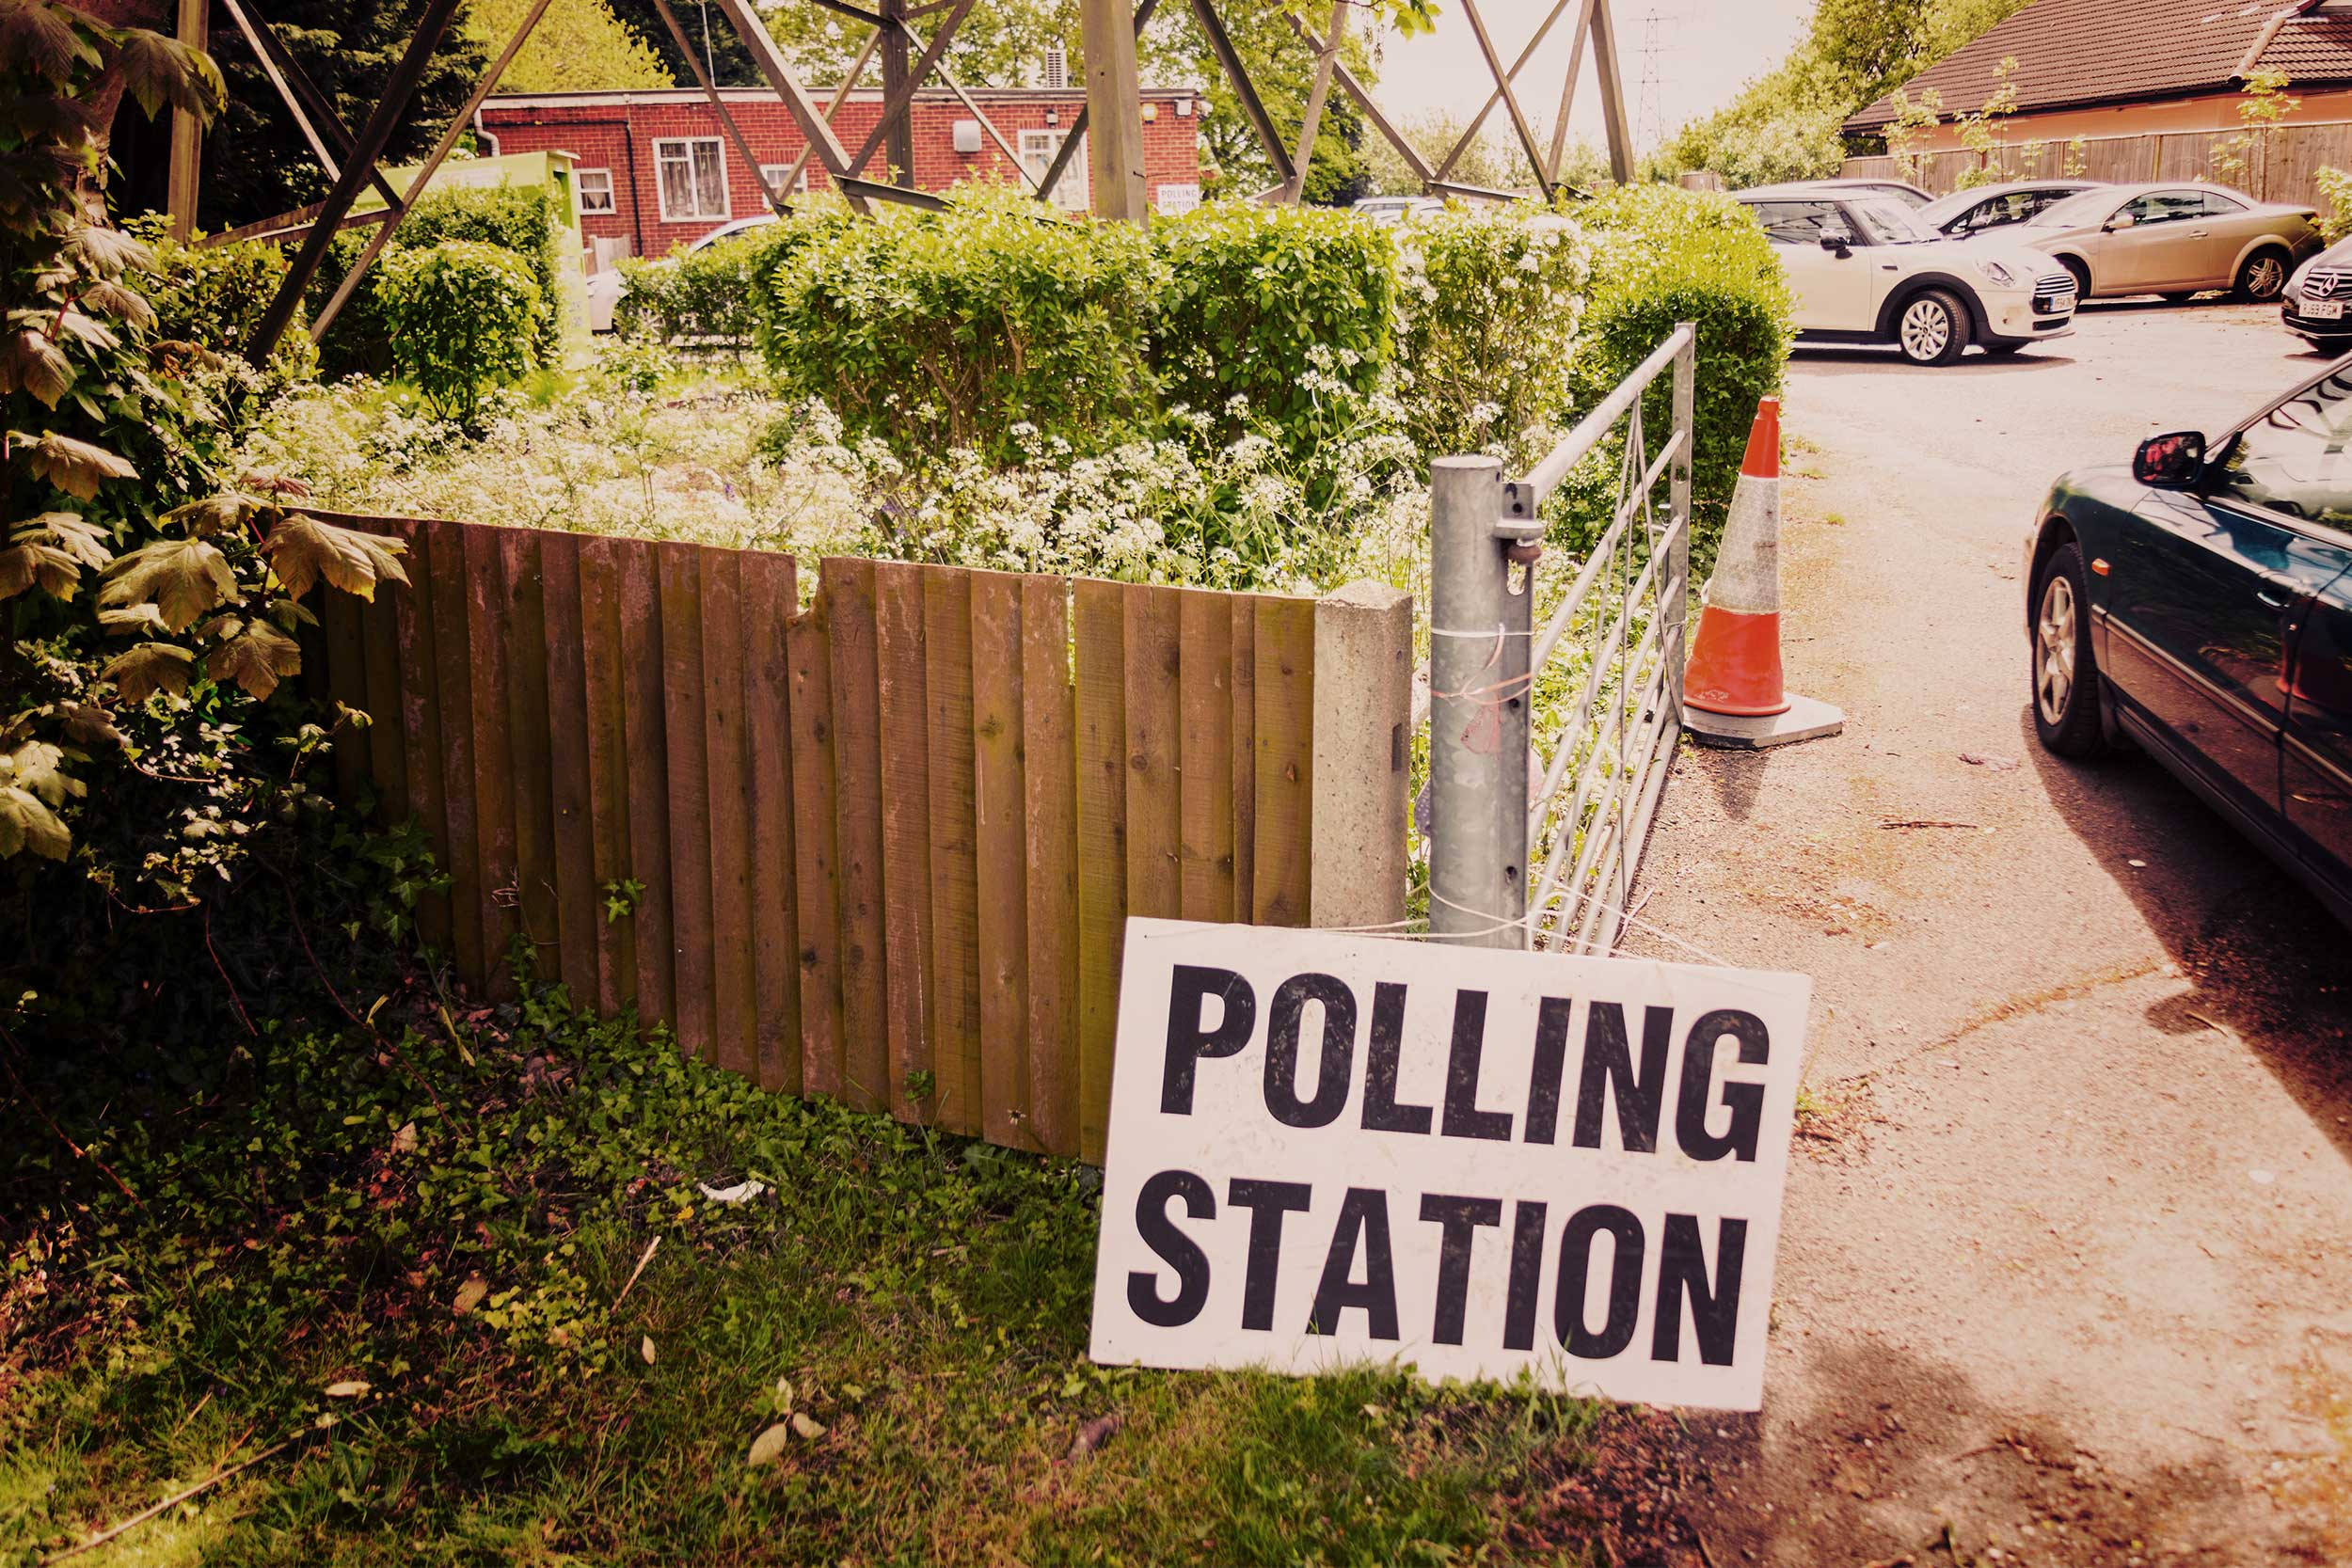 Image of a sign with 'Polling Station' printed on it propped against a garden fence.